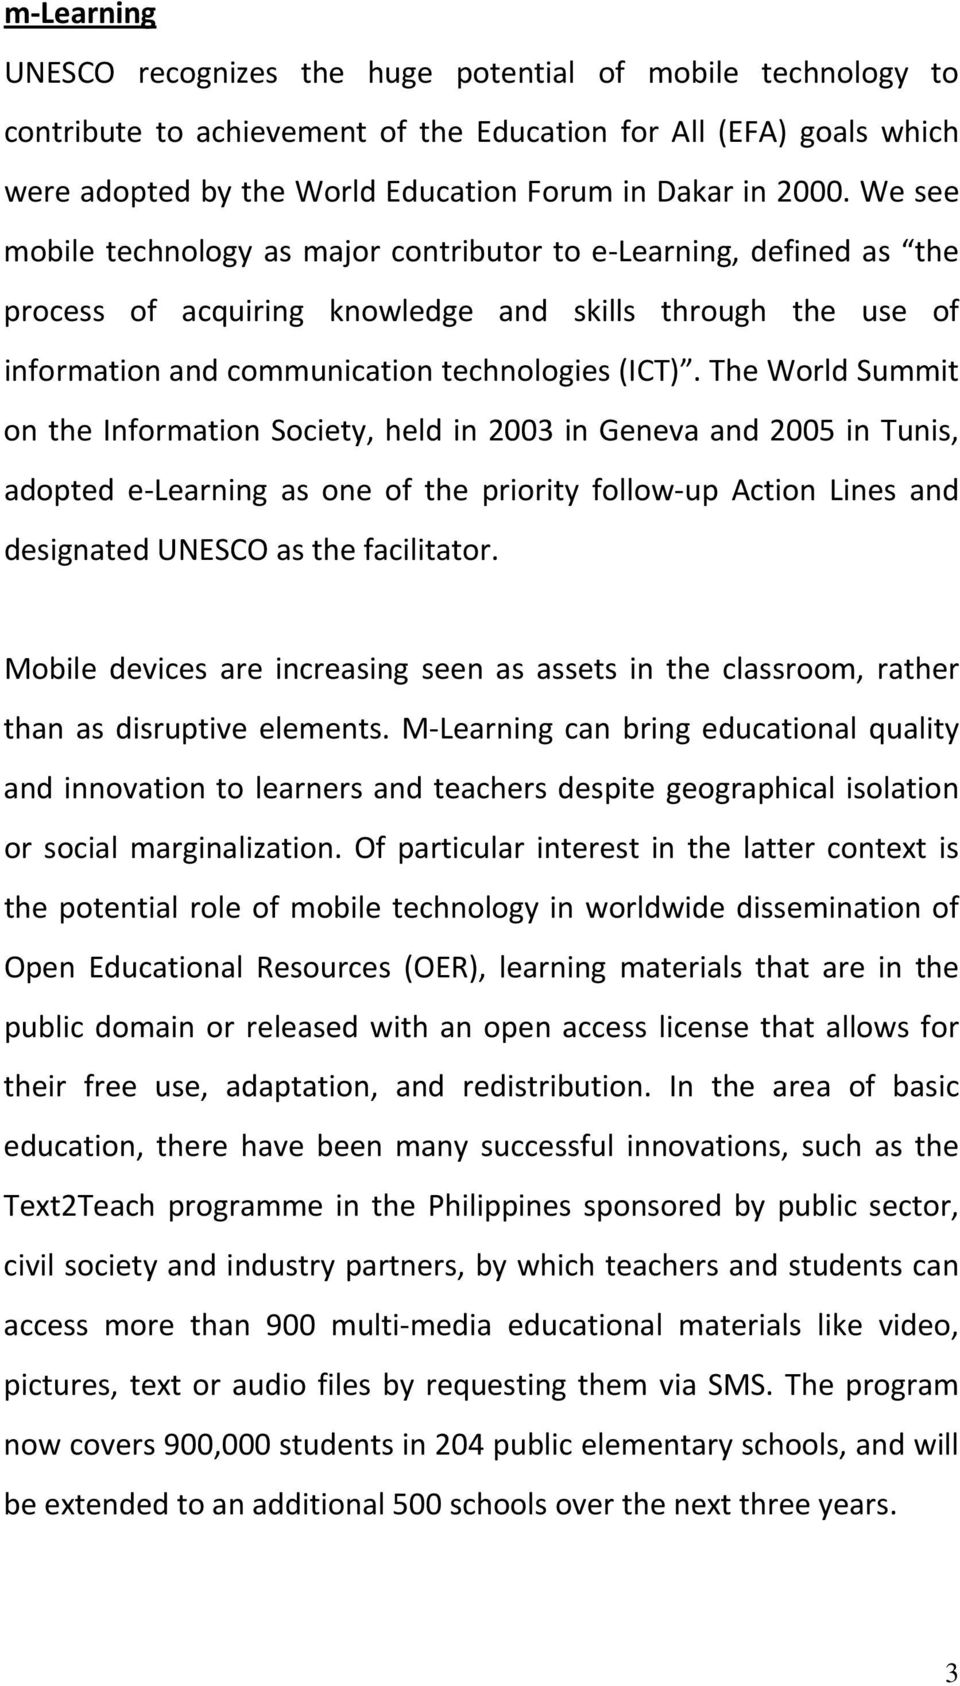 The World Summit on the Information Society, held in 2003 in Geneva and 2005 in Tunis, adopted e Learning as one of the priority follow up Action Lines and designated UNESCO as the facilitator.